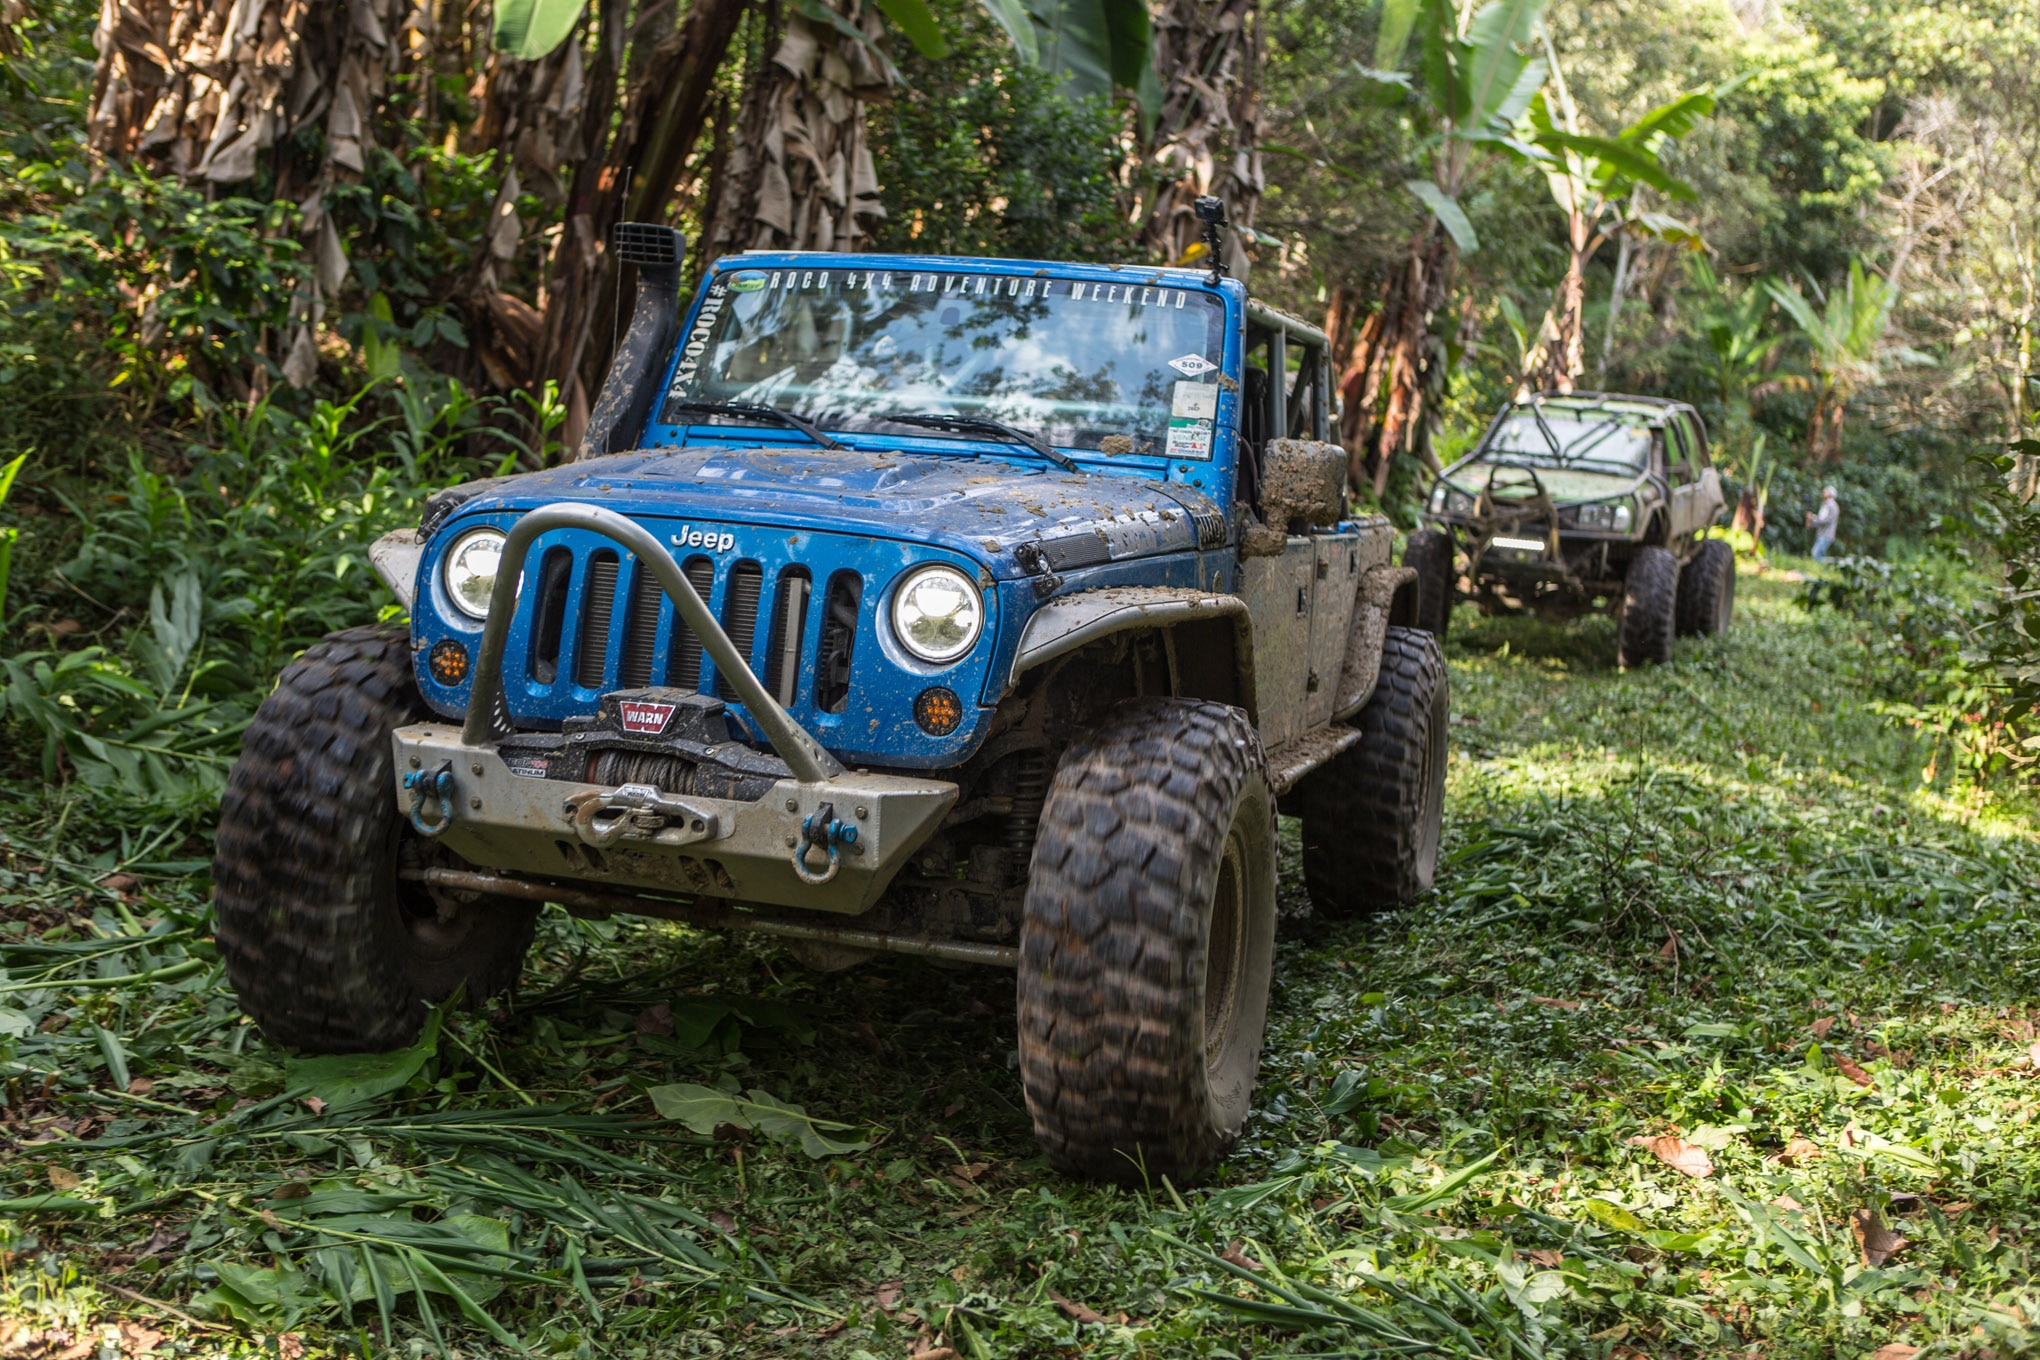 Rebeca Olavarrieta shared driving duties of her built JK with Sergio Pinillos from SpiderWebShade. The topless Wrangler was a popular choice on sunny days on the trail, but less so during rainy road days when passengers were scrambling for the hardtop Jeeps.